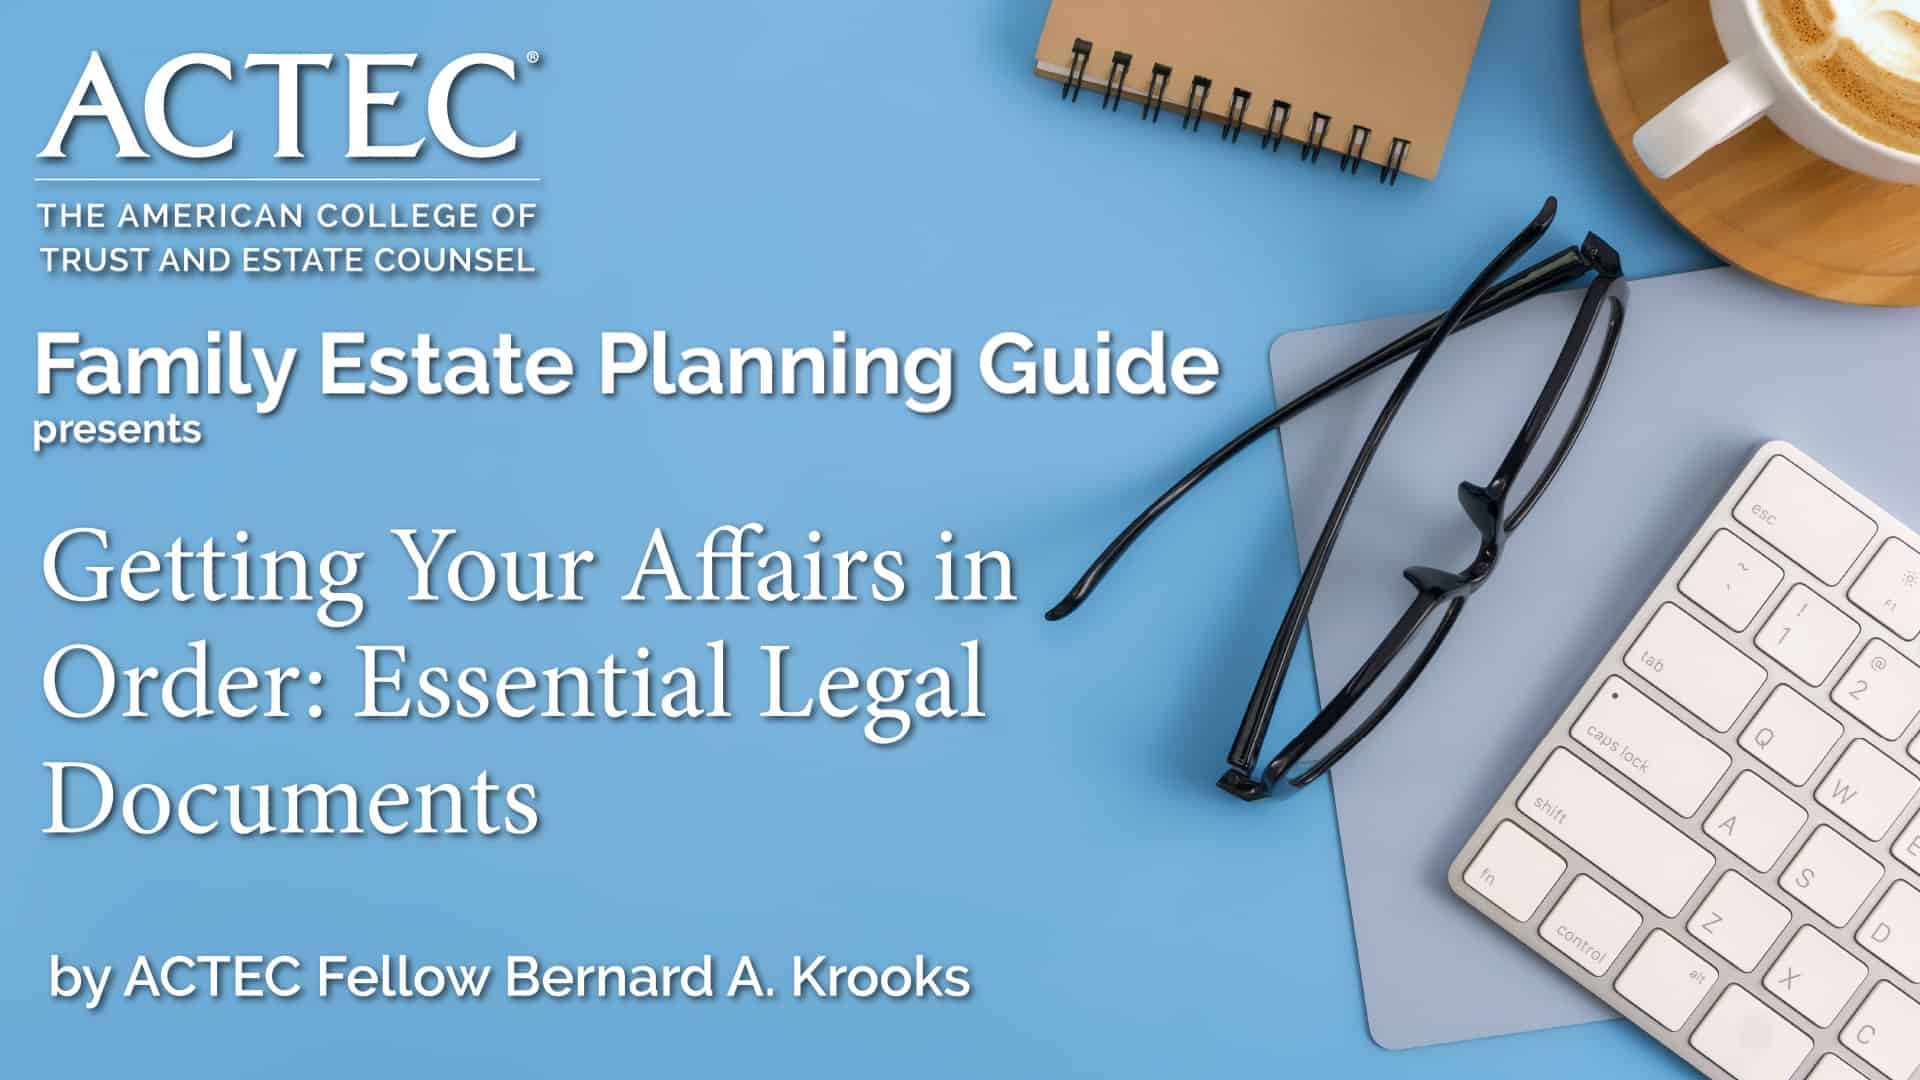 Getting Your Affairs in Order: Essential Legal Documents